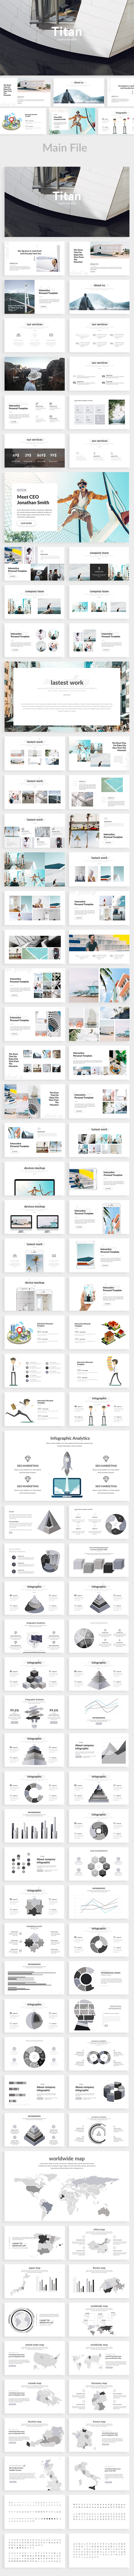 Titan Creative Powerpoint Template - Creative PowerPoint Templates